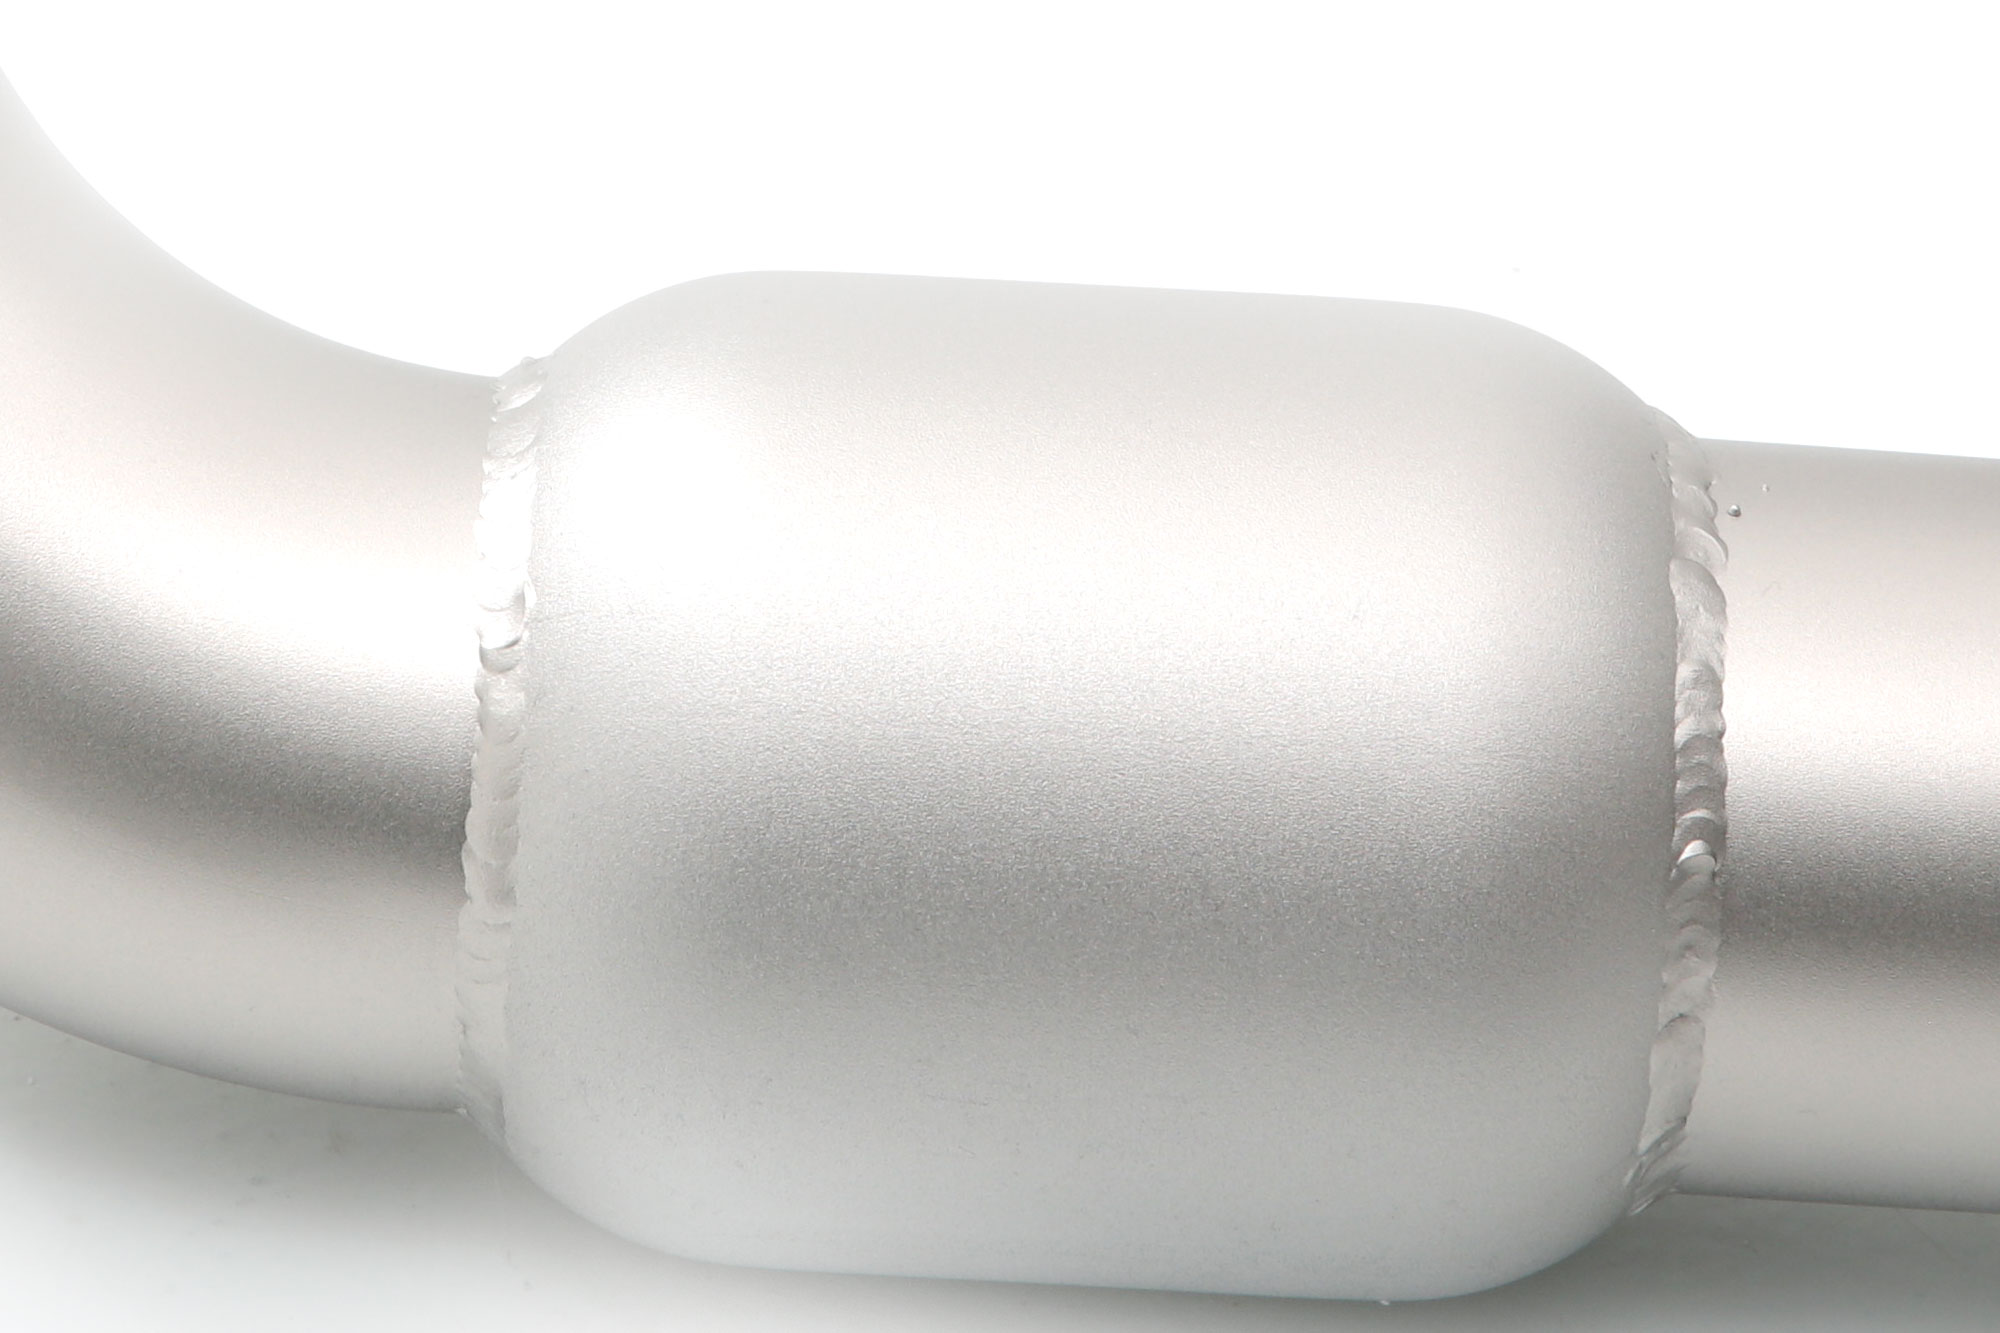 F-150 EcoBoost DownpipeHigh flow catalytic converter